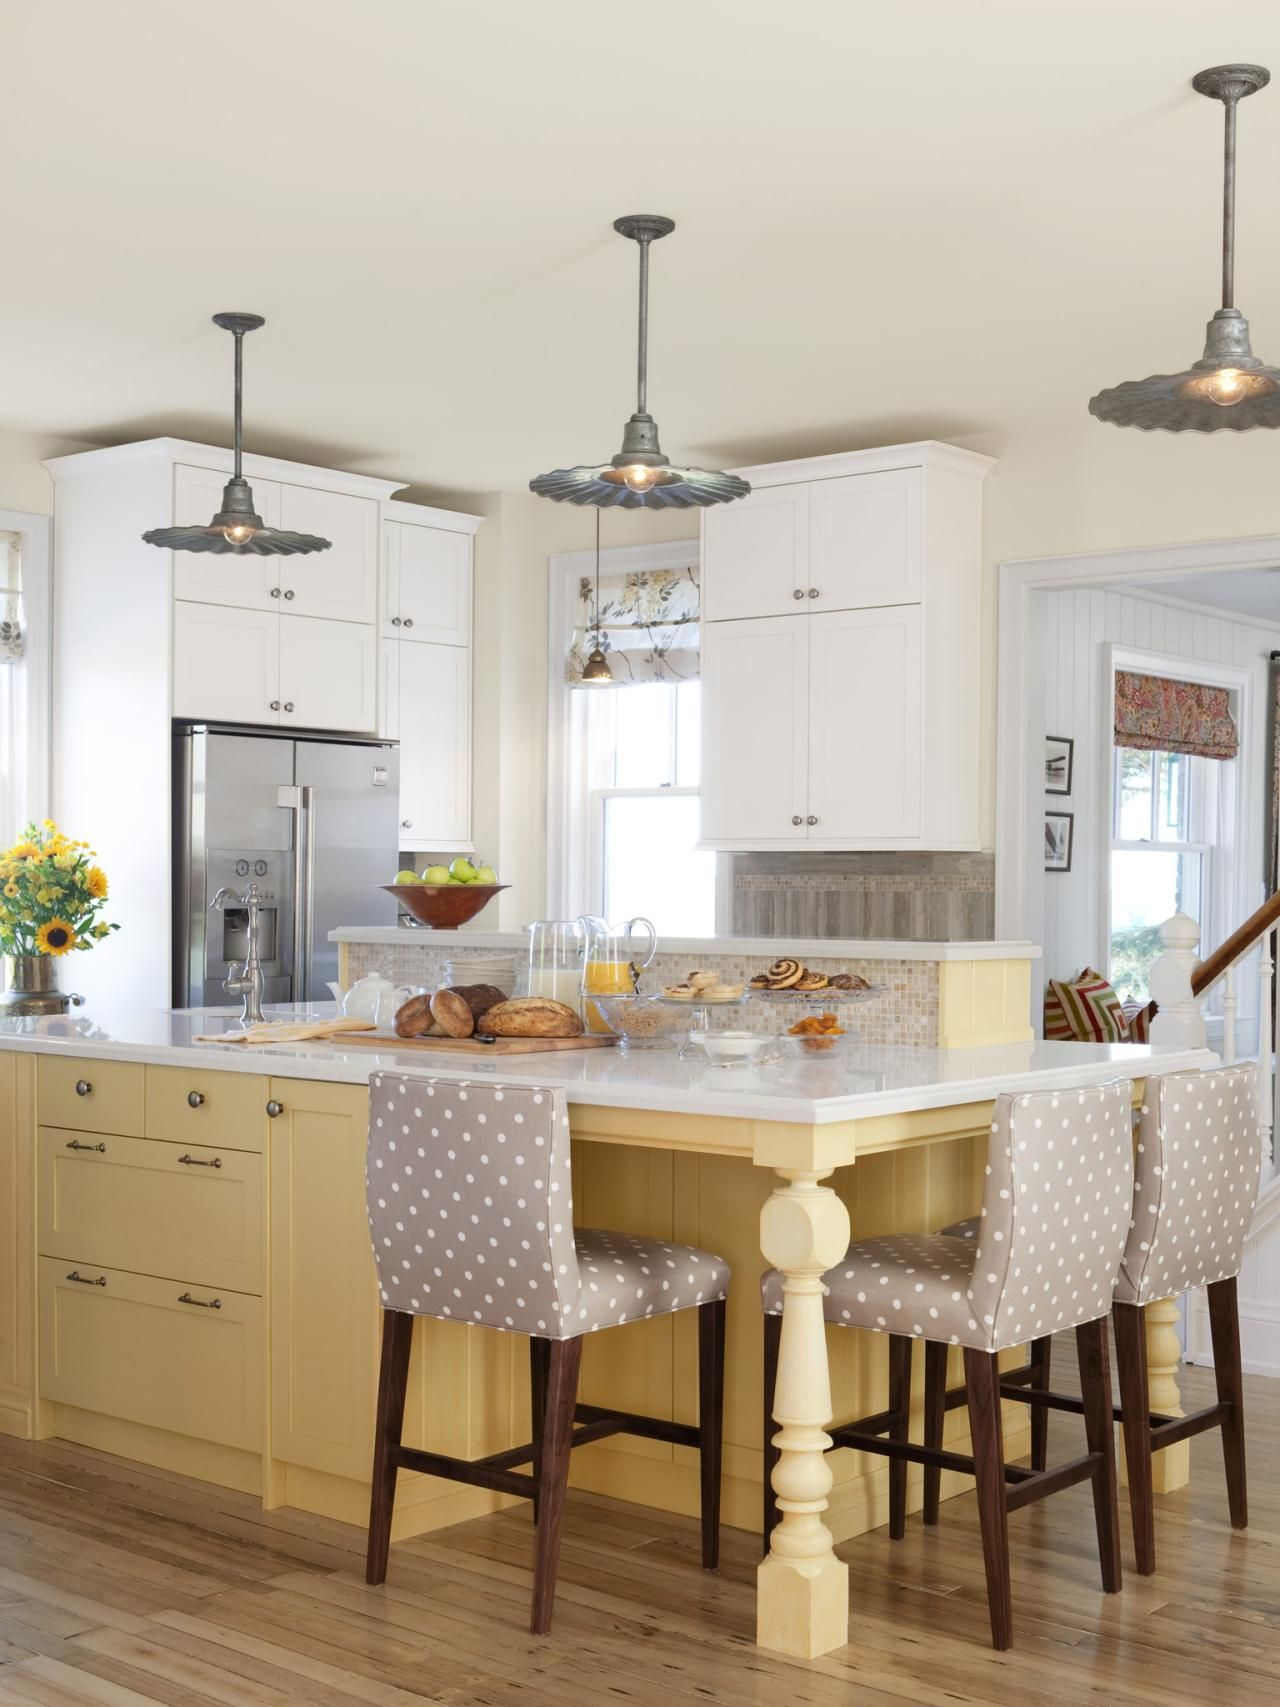 In keeping with the homeus original farmhouse style designer